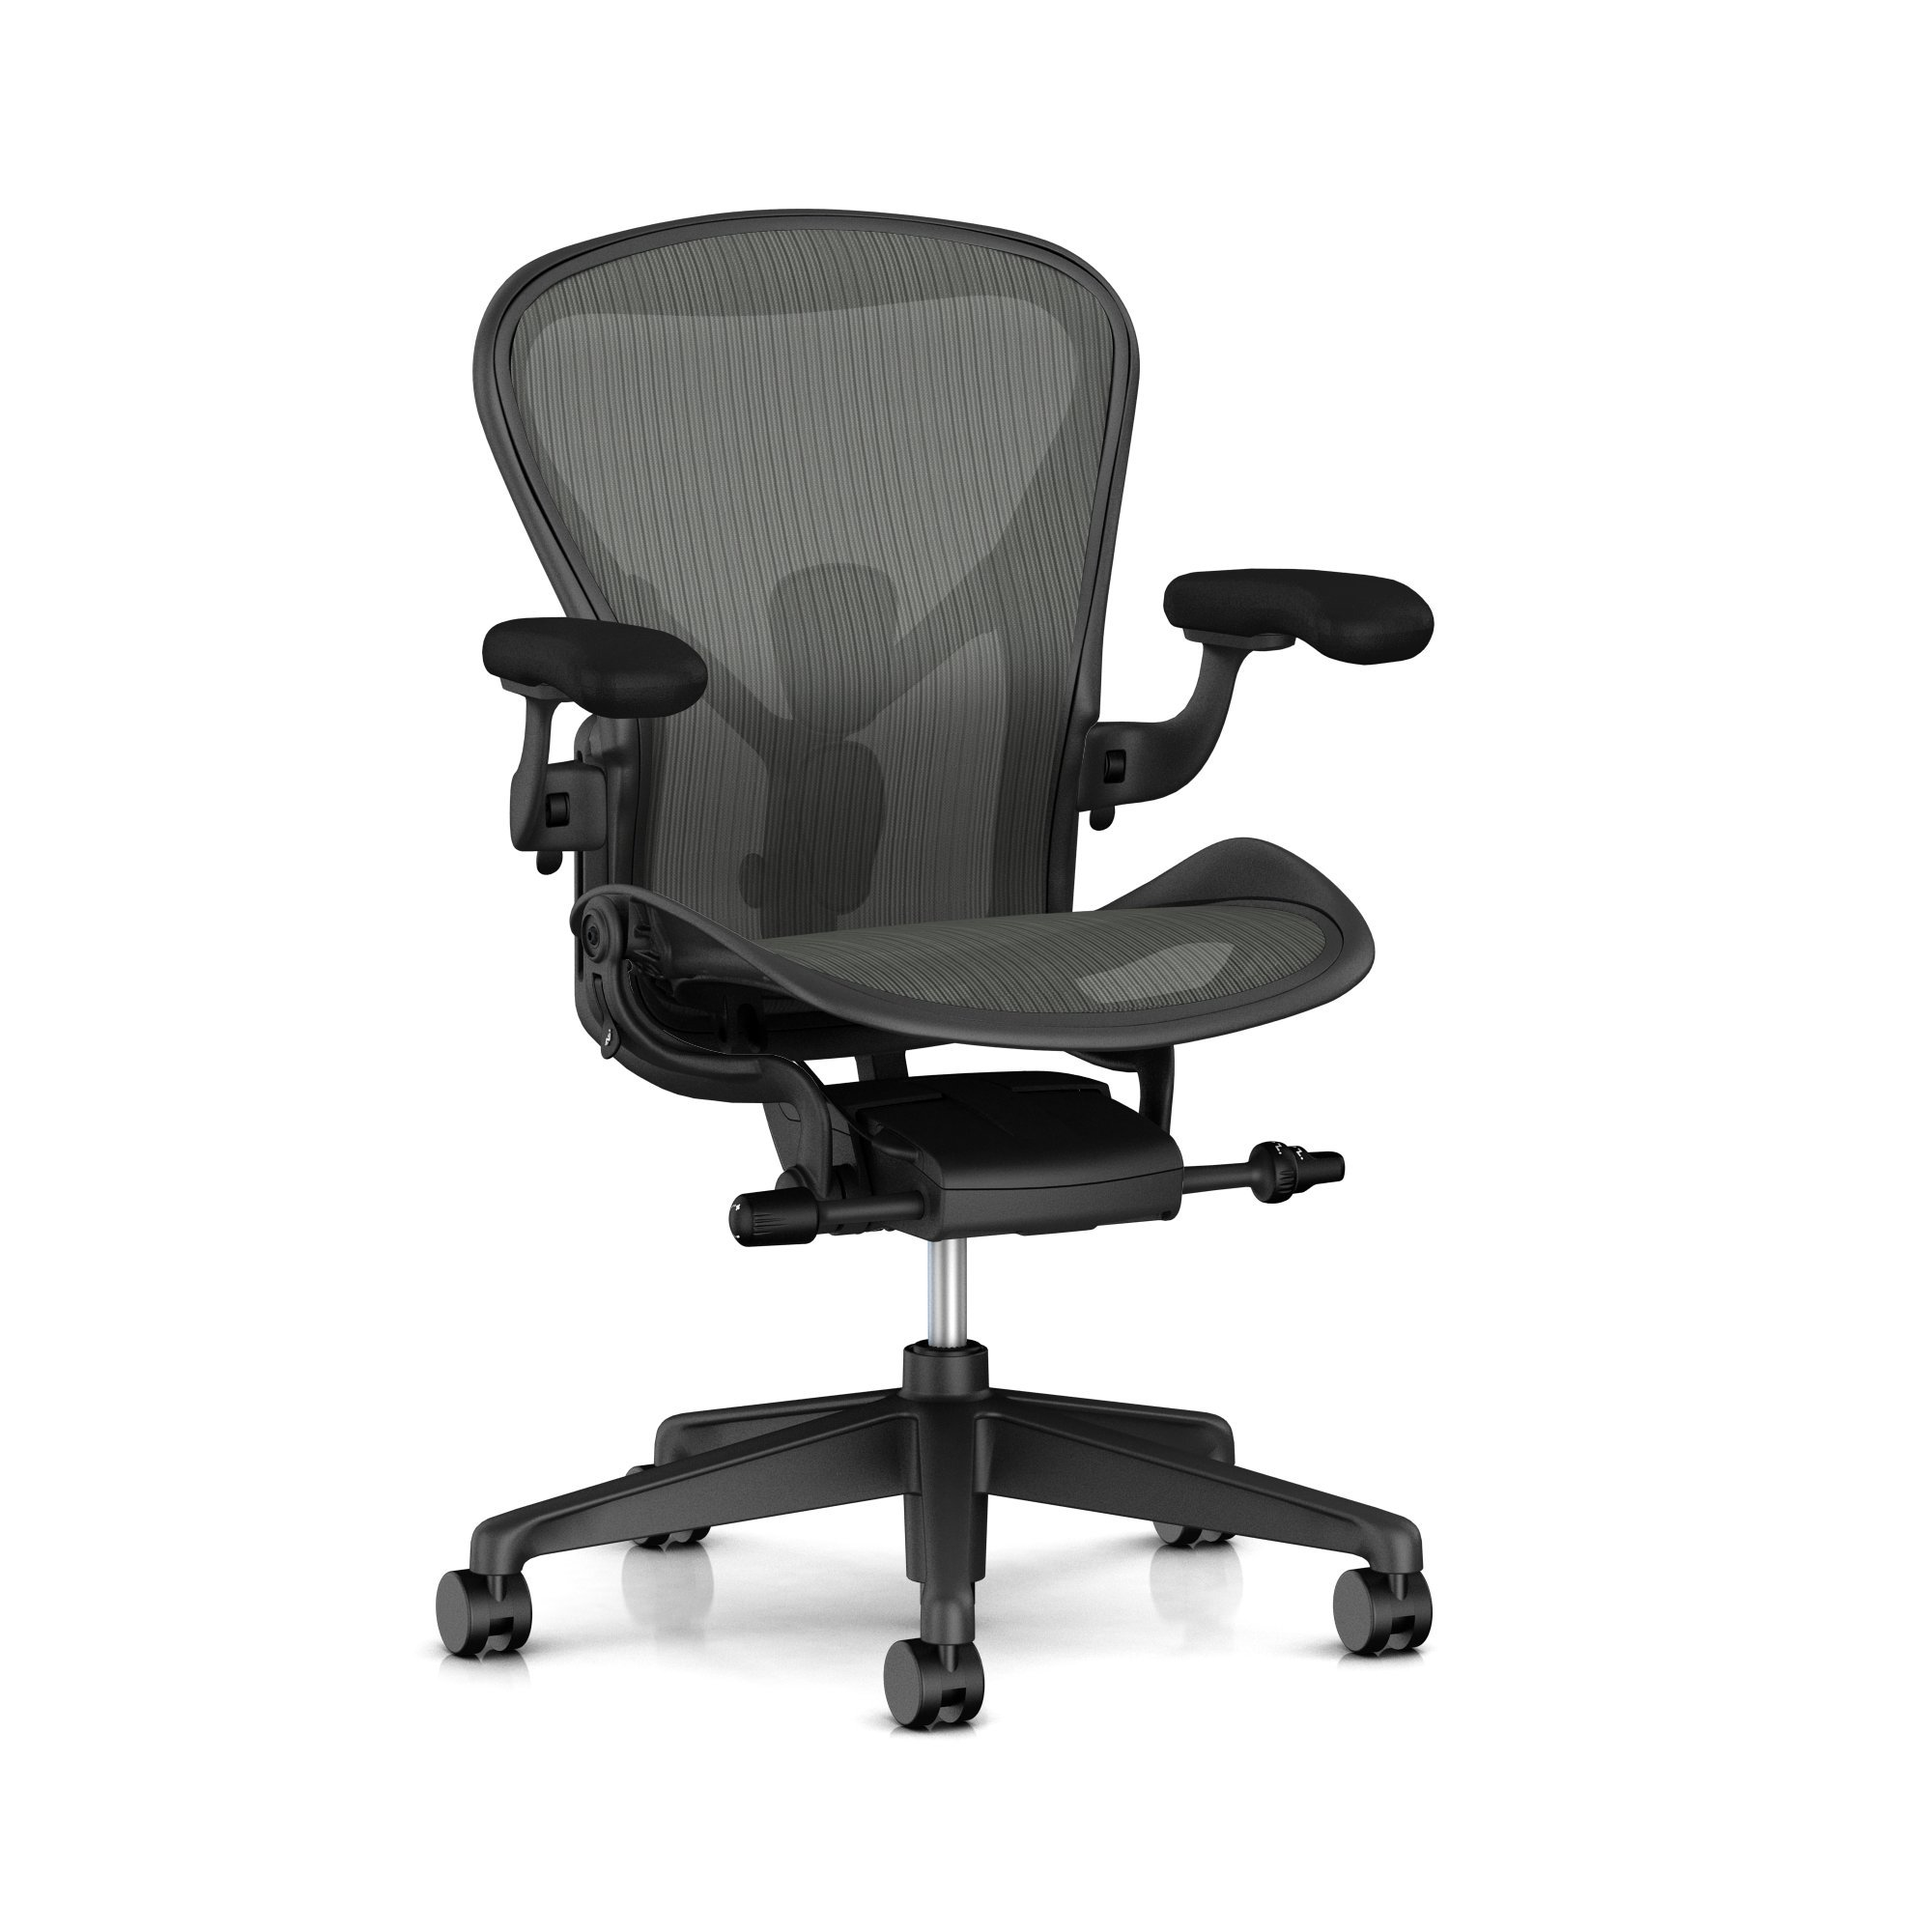 Herman Miller Aeron Chair, Size C, Graphite by Herman Miller (Image #8)